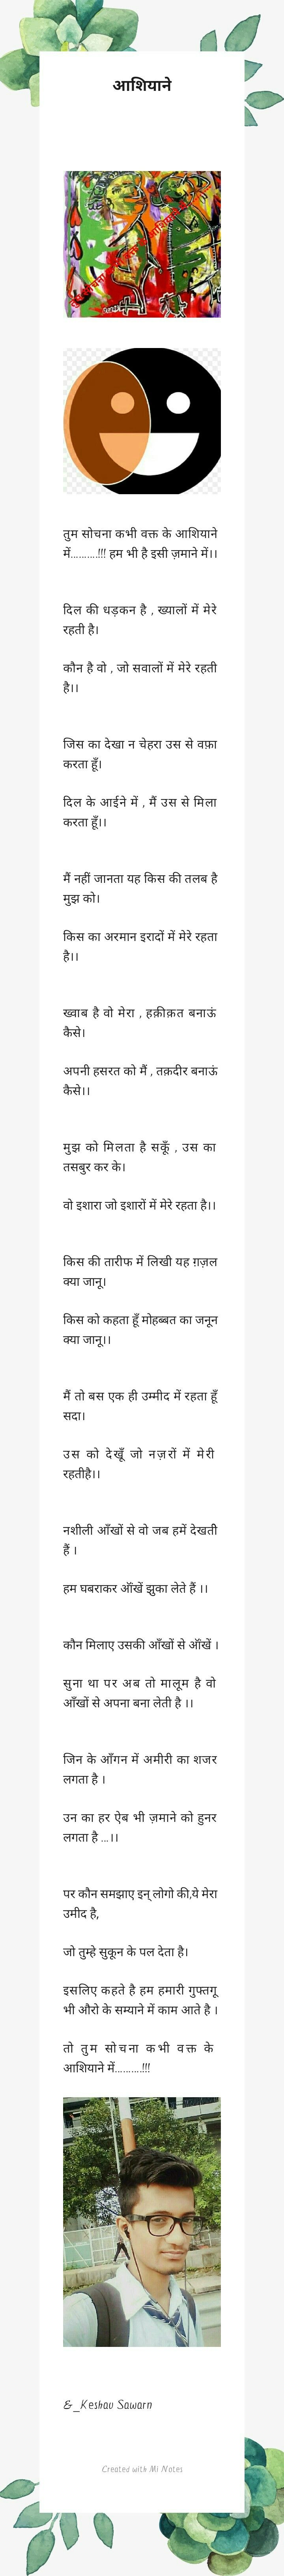 Its a lovely Hindi poem  on the  lative feelings